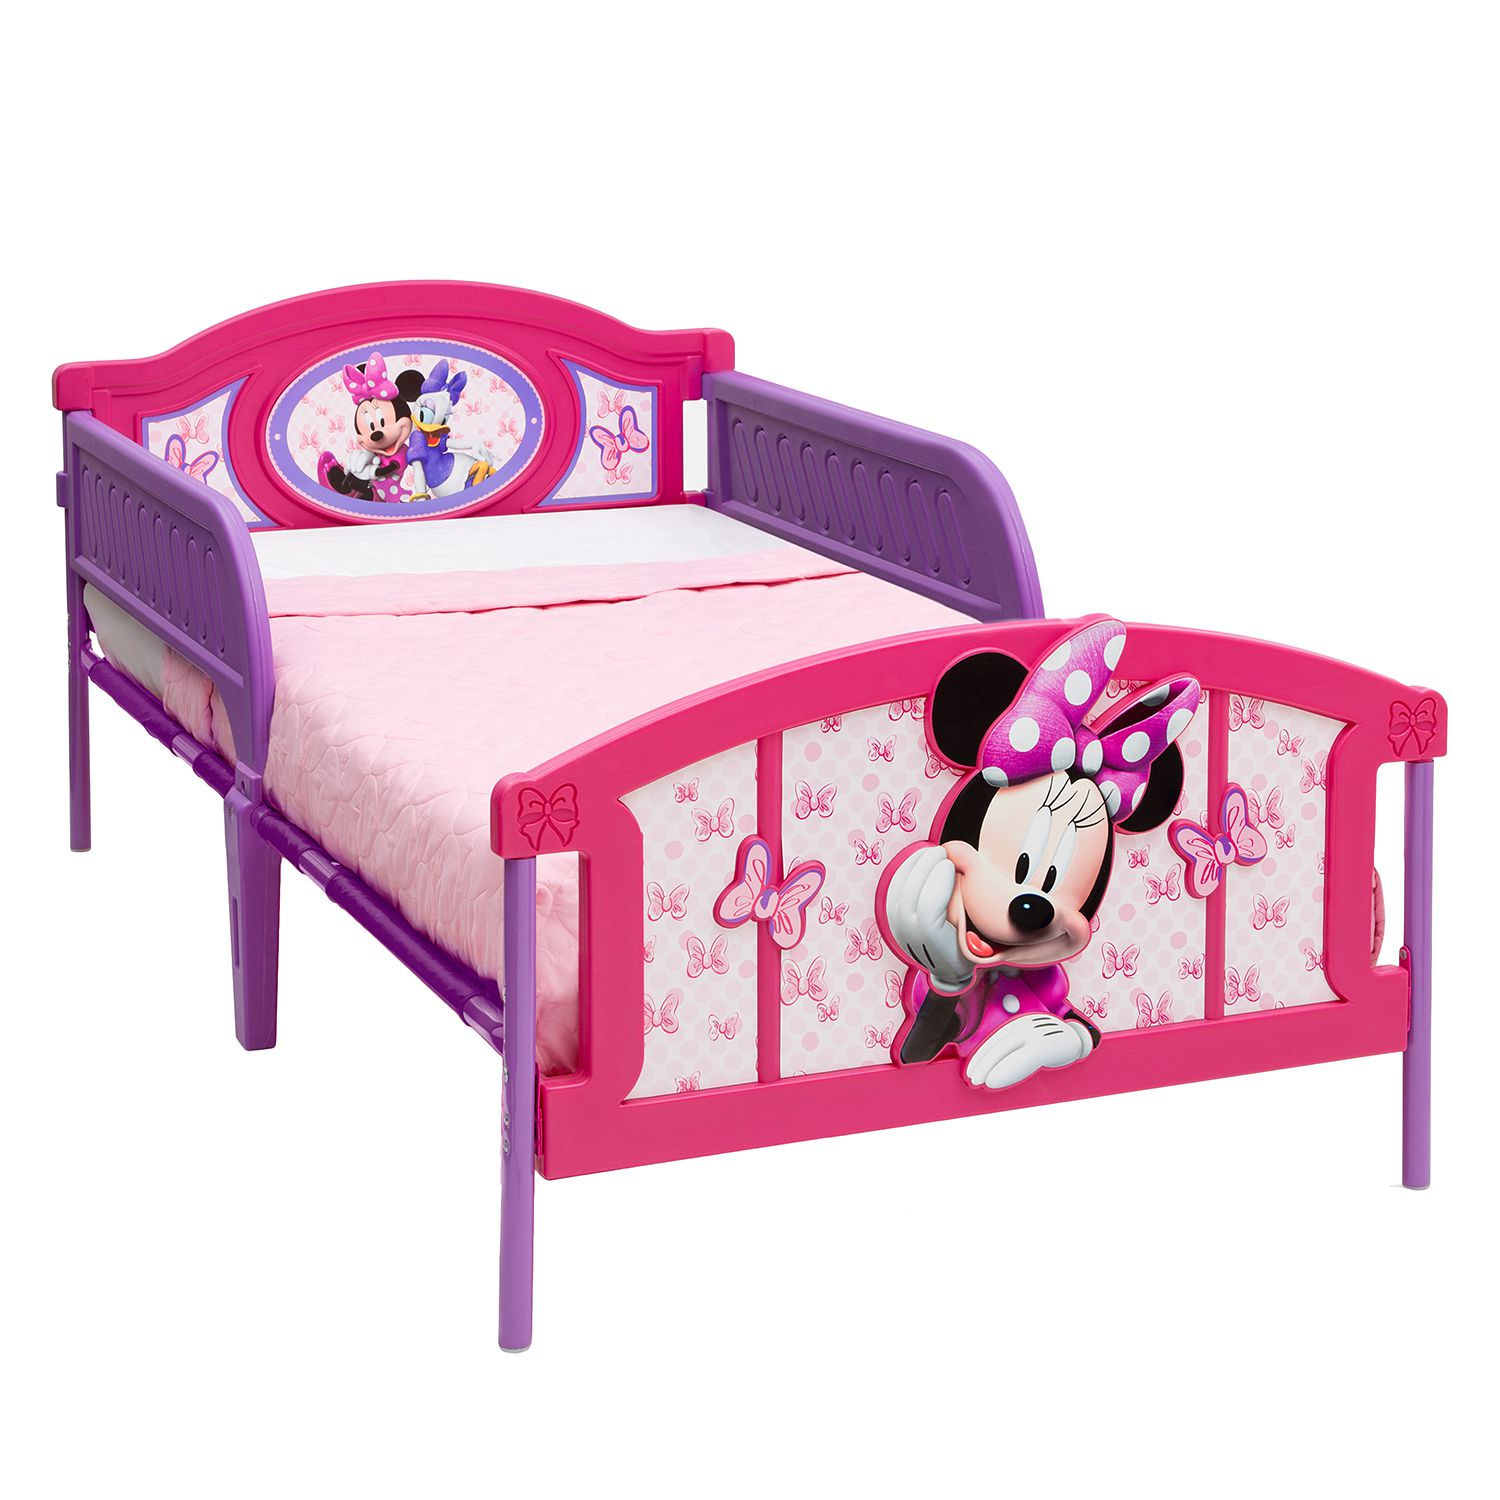 Lit Minnie Mouse - 90 x 190 cm, Delta Children